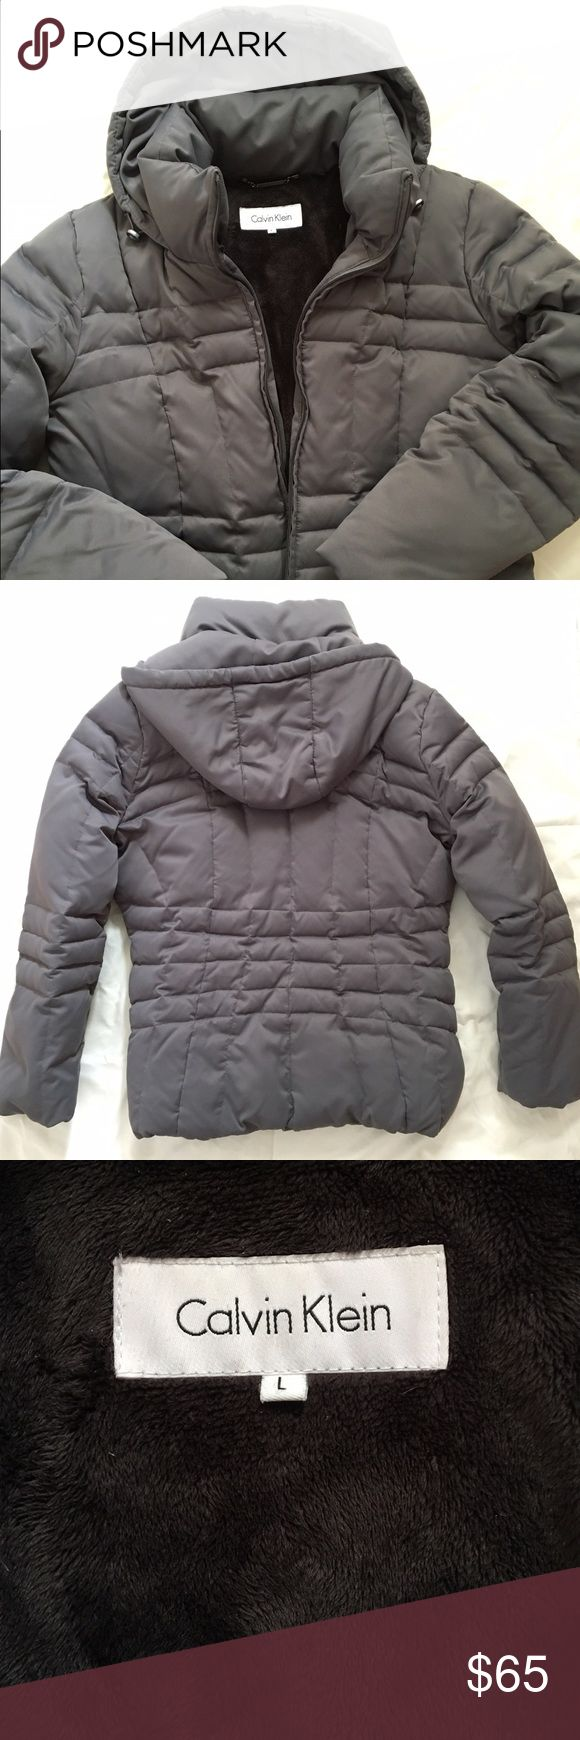 Women's Calvin Klein Puffer Coat Women's Calvin Klein down insulated puffer coat, hooded with a snuggly soft liner and interior pockets as shown in photos.  Grey, size large. Calvin Klein Jackets & Coats Puffers